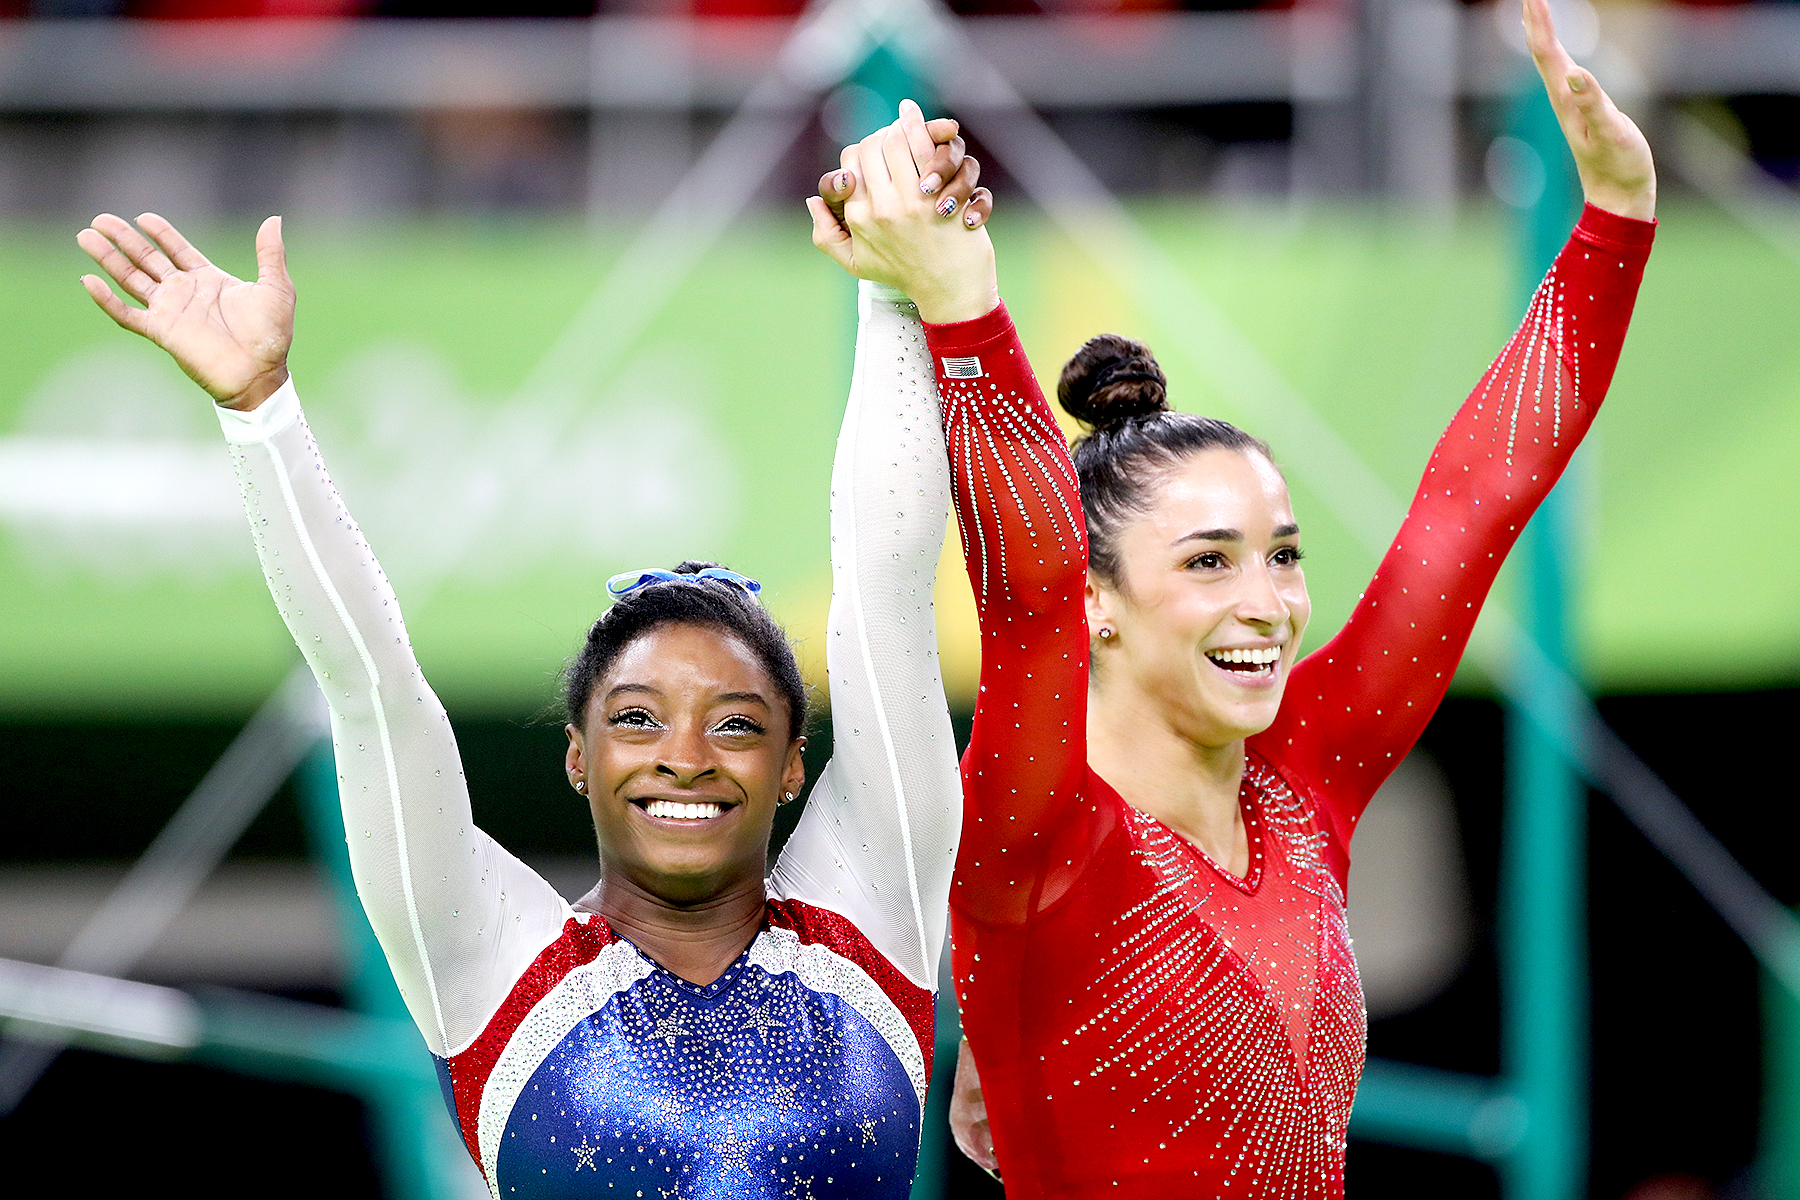 Simone Biles of the United State and Alexandra Raisman of the United States celebrate after winning Gold and Silver during the Artistic Gymnastics Women's Individual All-Around Final at the Rio Olympic Arena on August 11, 2016 in Rio de Janeiro, Brazil.